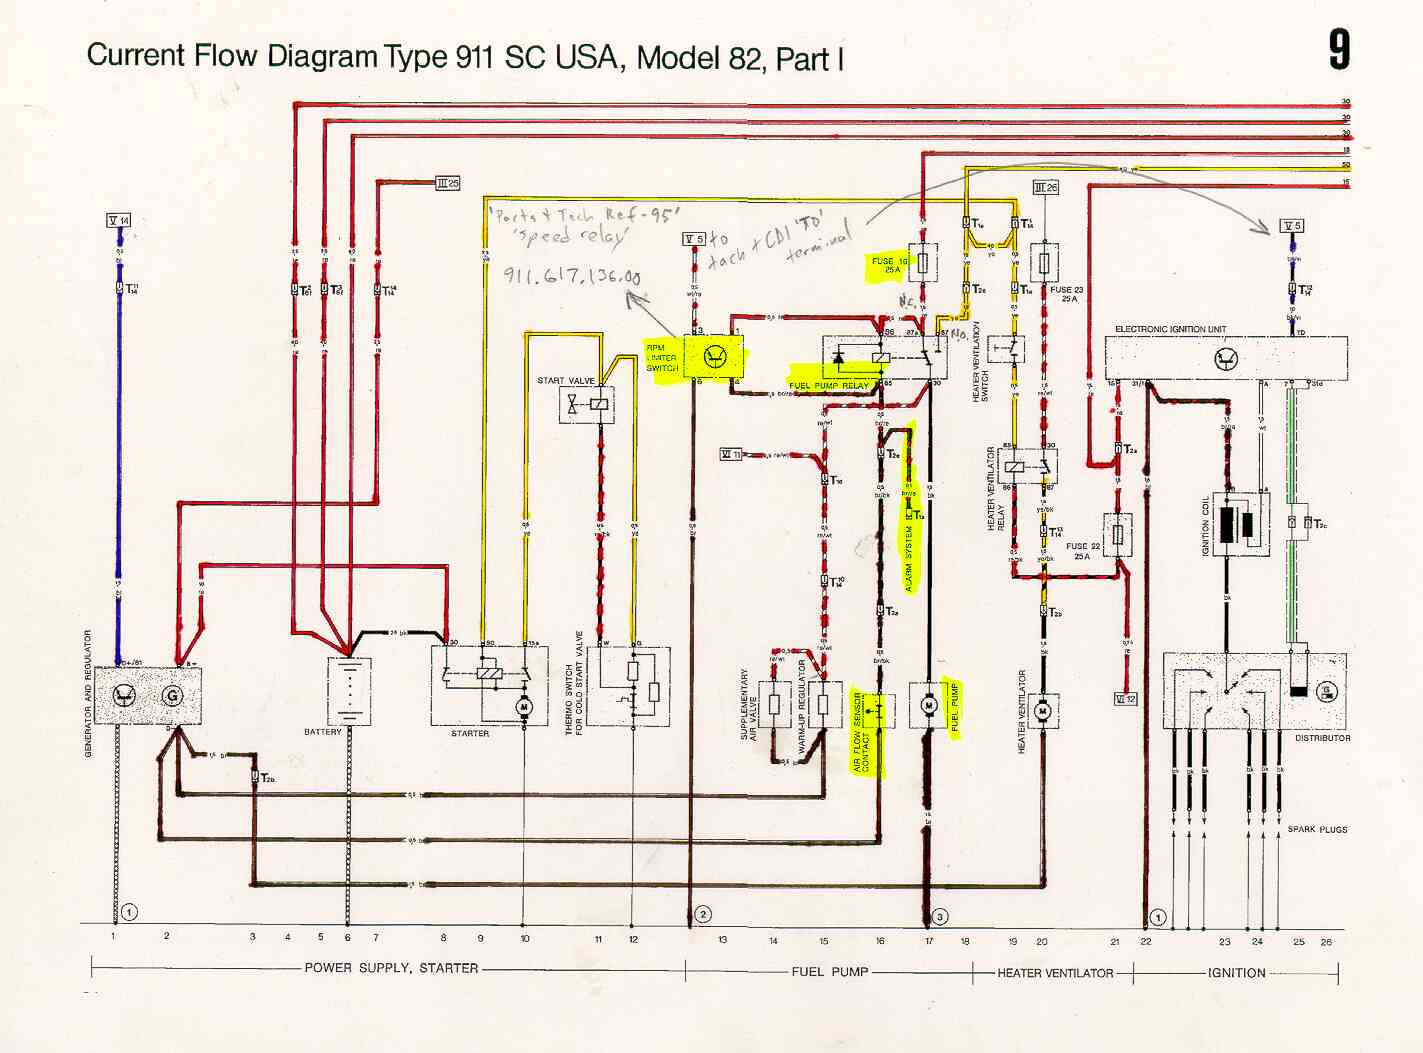 1977 porsche 911 wiring diagram 1960 triumph tr3 wiring diagram car alarm circuit diagram porsche alarm wiring diagram